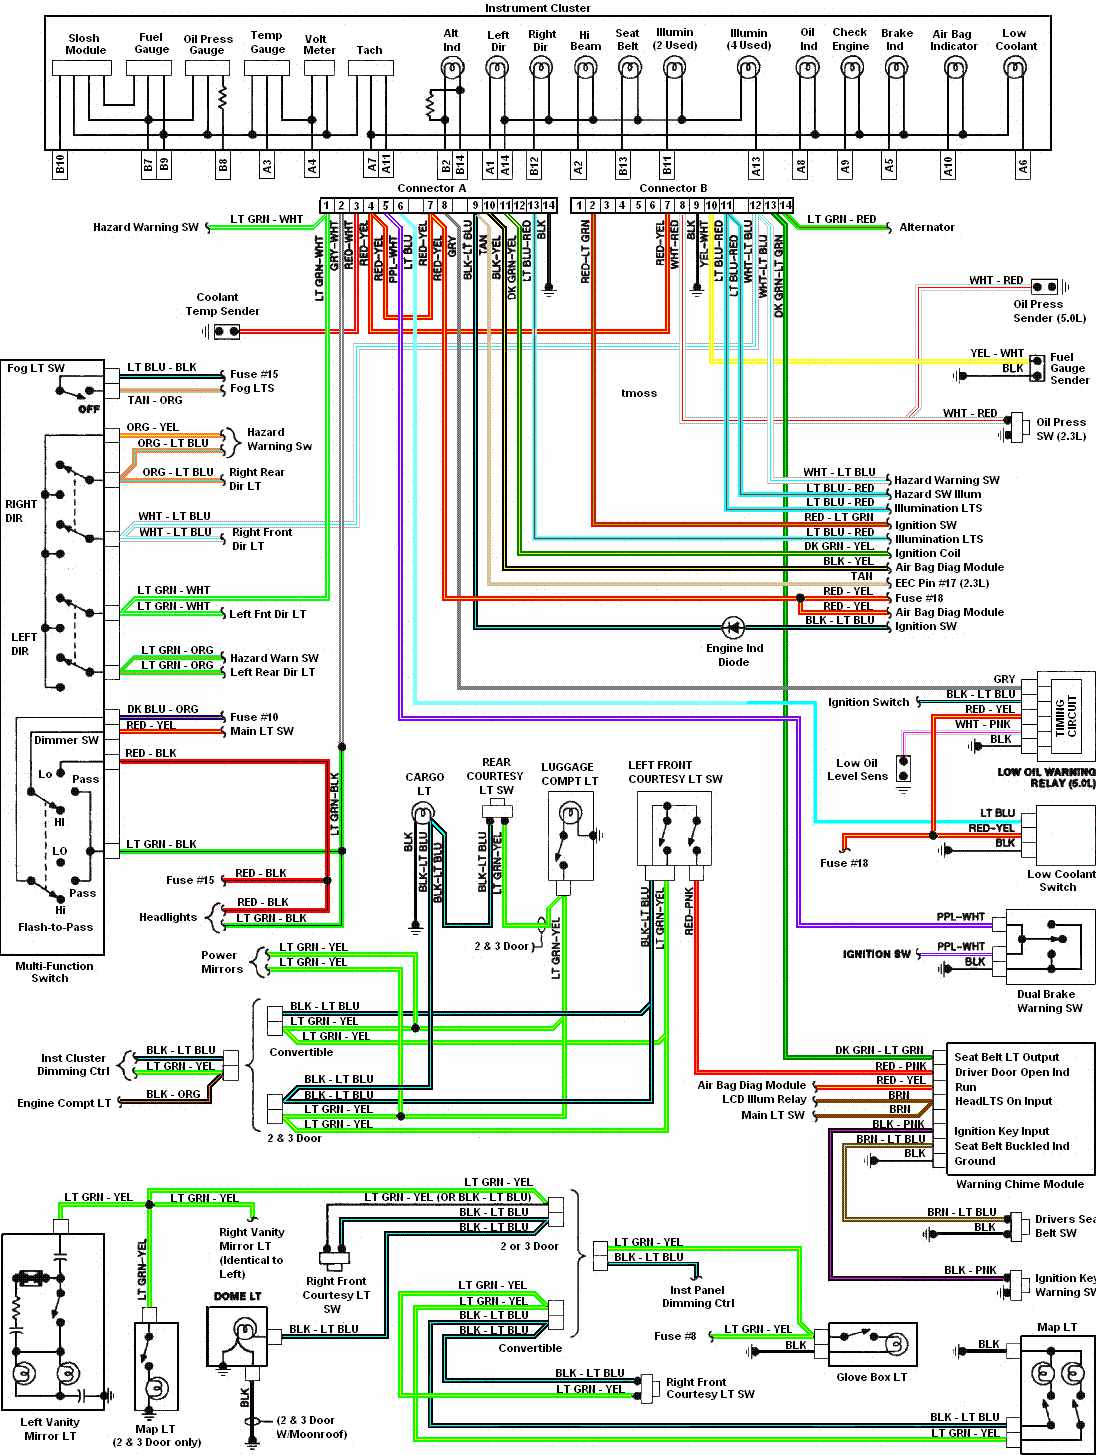 tail light wiring diagram ford fusion 2010 with Instrument Cluster Wiring Diagrams Of on Neo L Schematic The Wiring Diagram Readingrat   For   Research With Power Step besides Brake light switch likewise Ford Focus Wiring Diagram also Michelle Obama Covers Time Magazine additionally Watch.